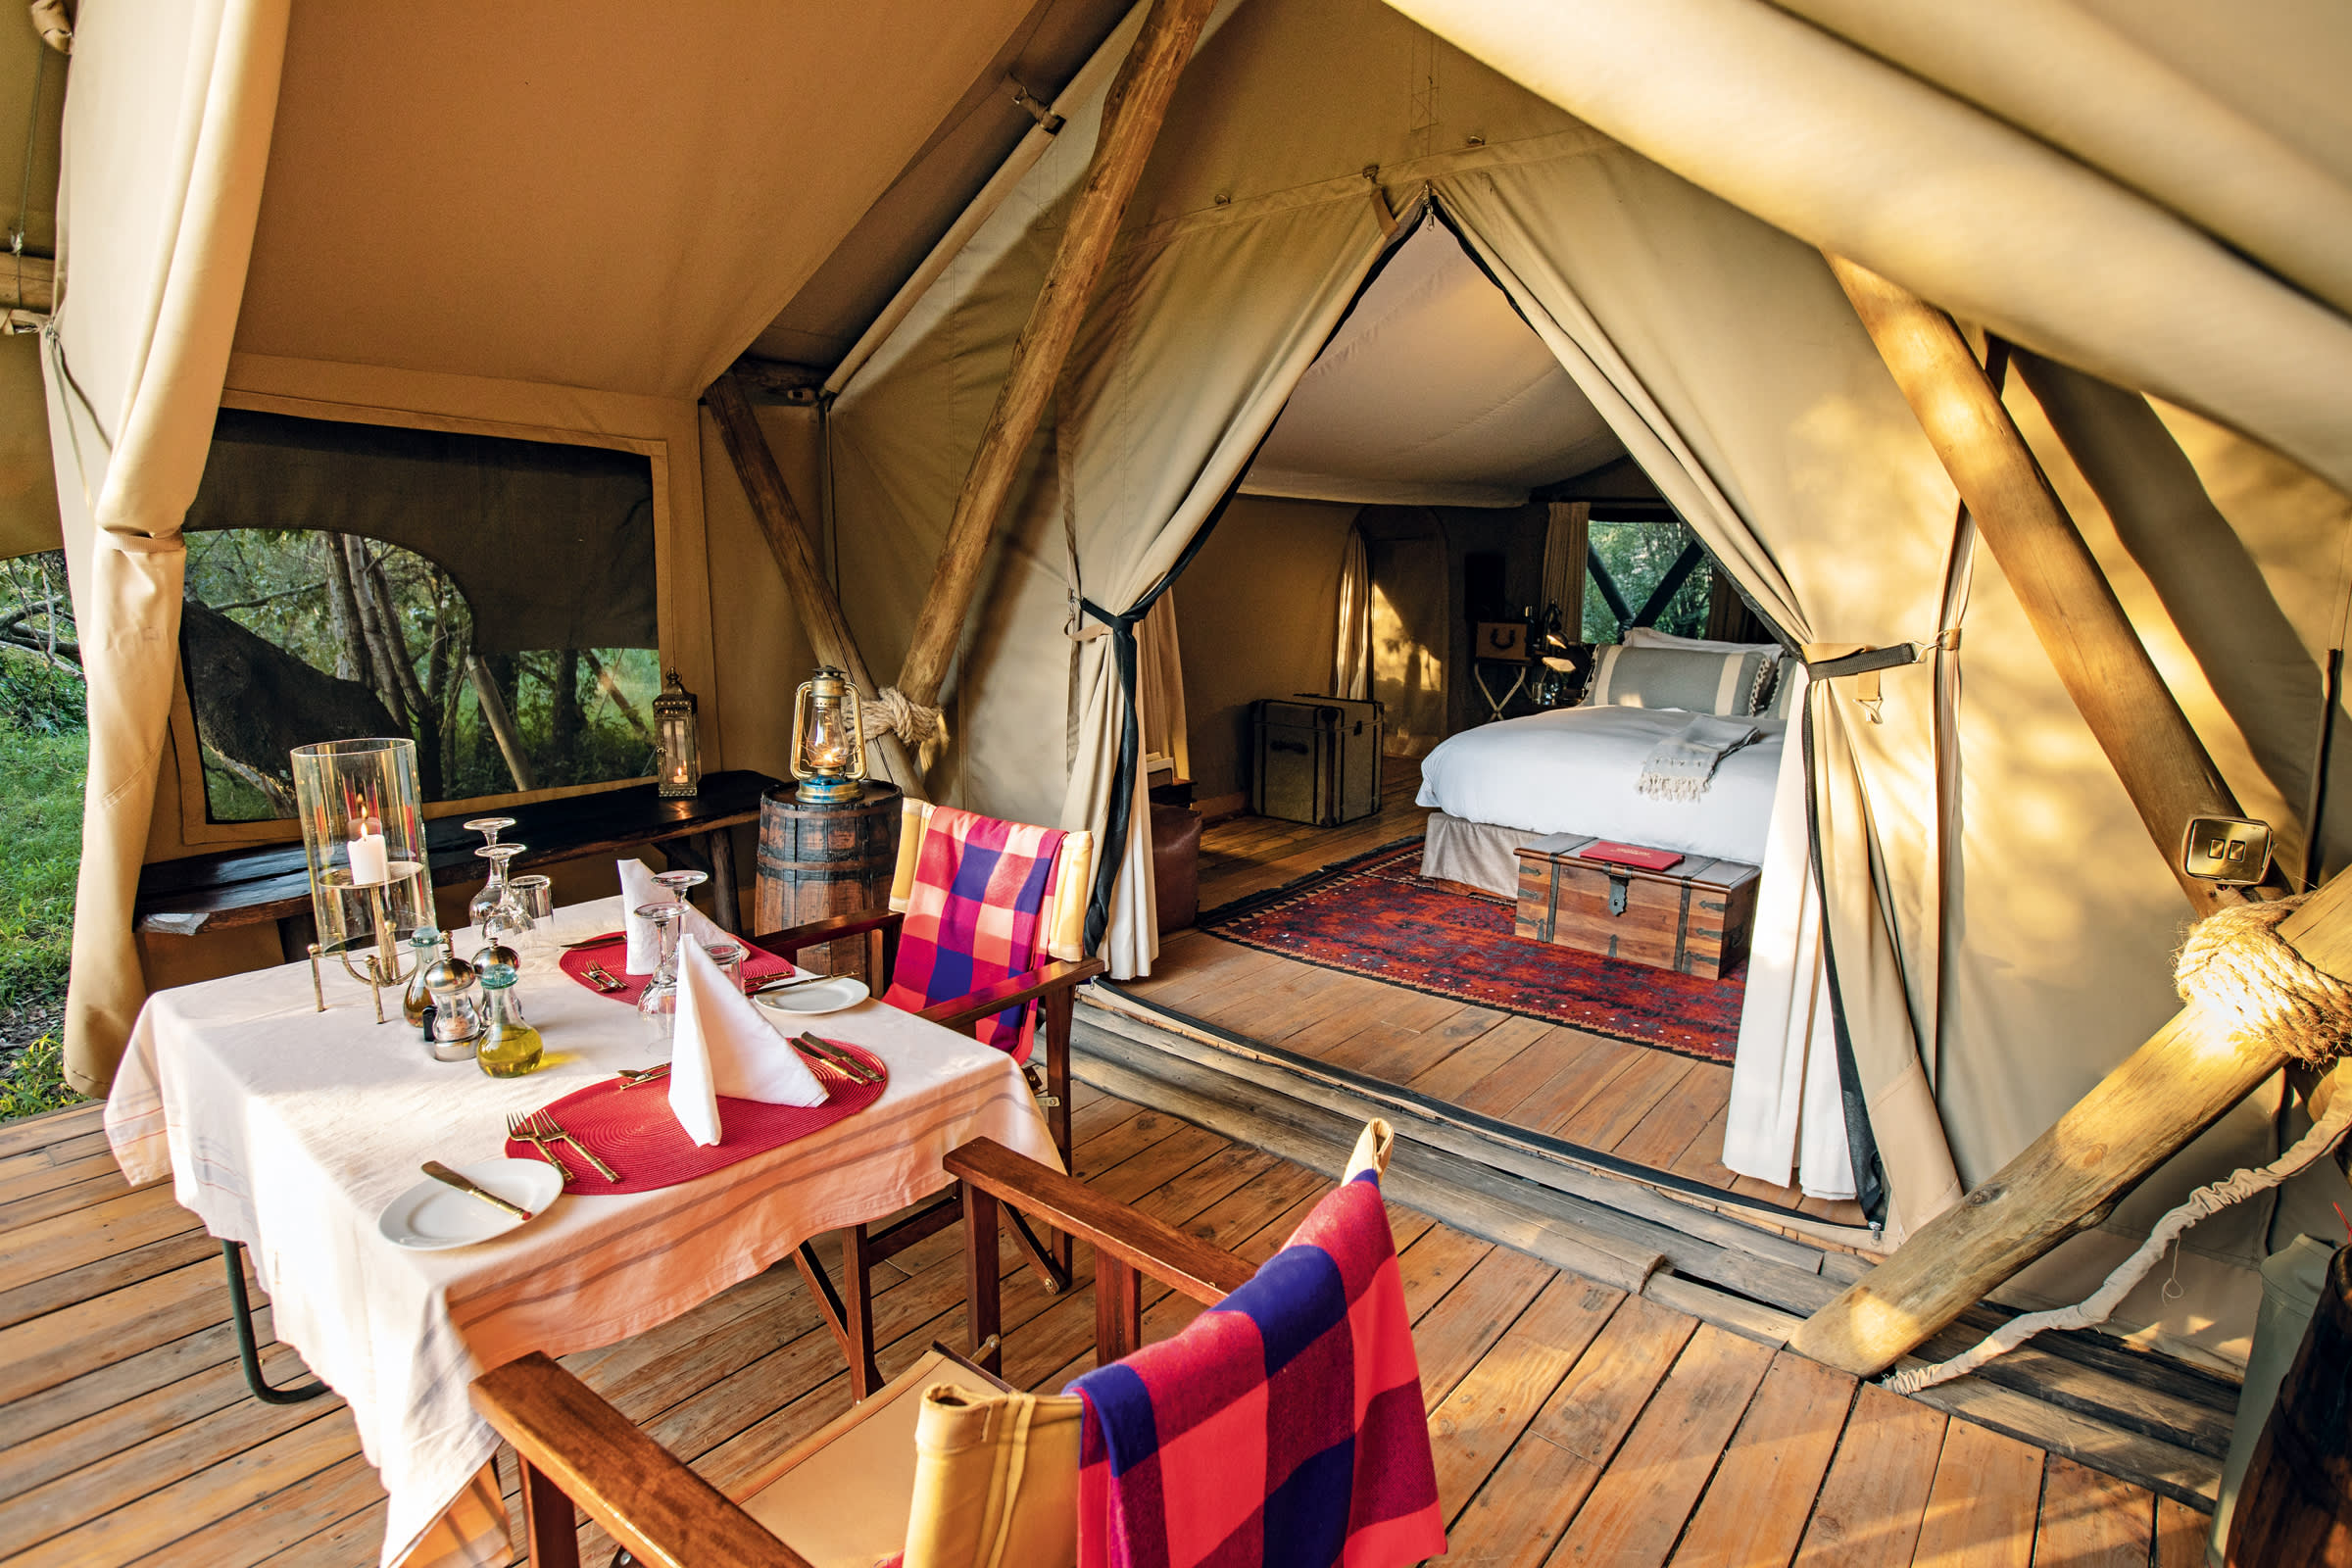 Great Plains Conservation's Mara Expedition Camp in Kenya